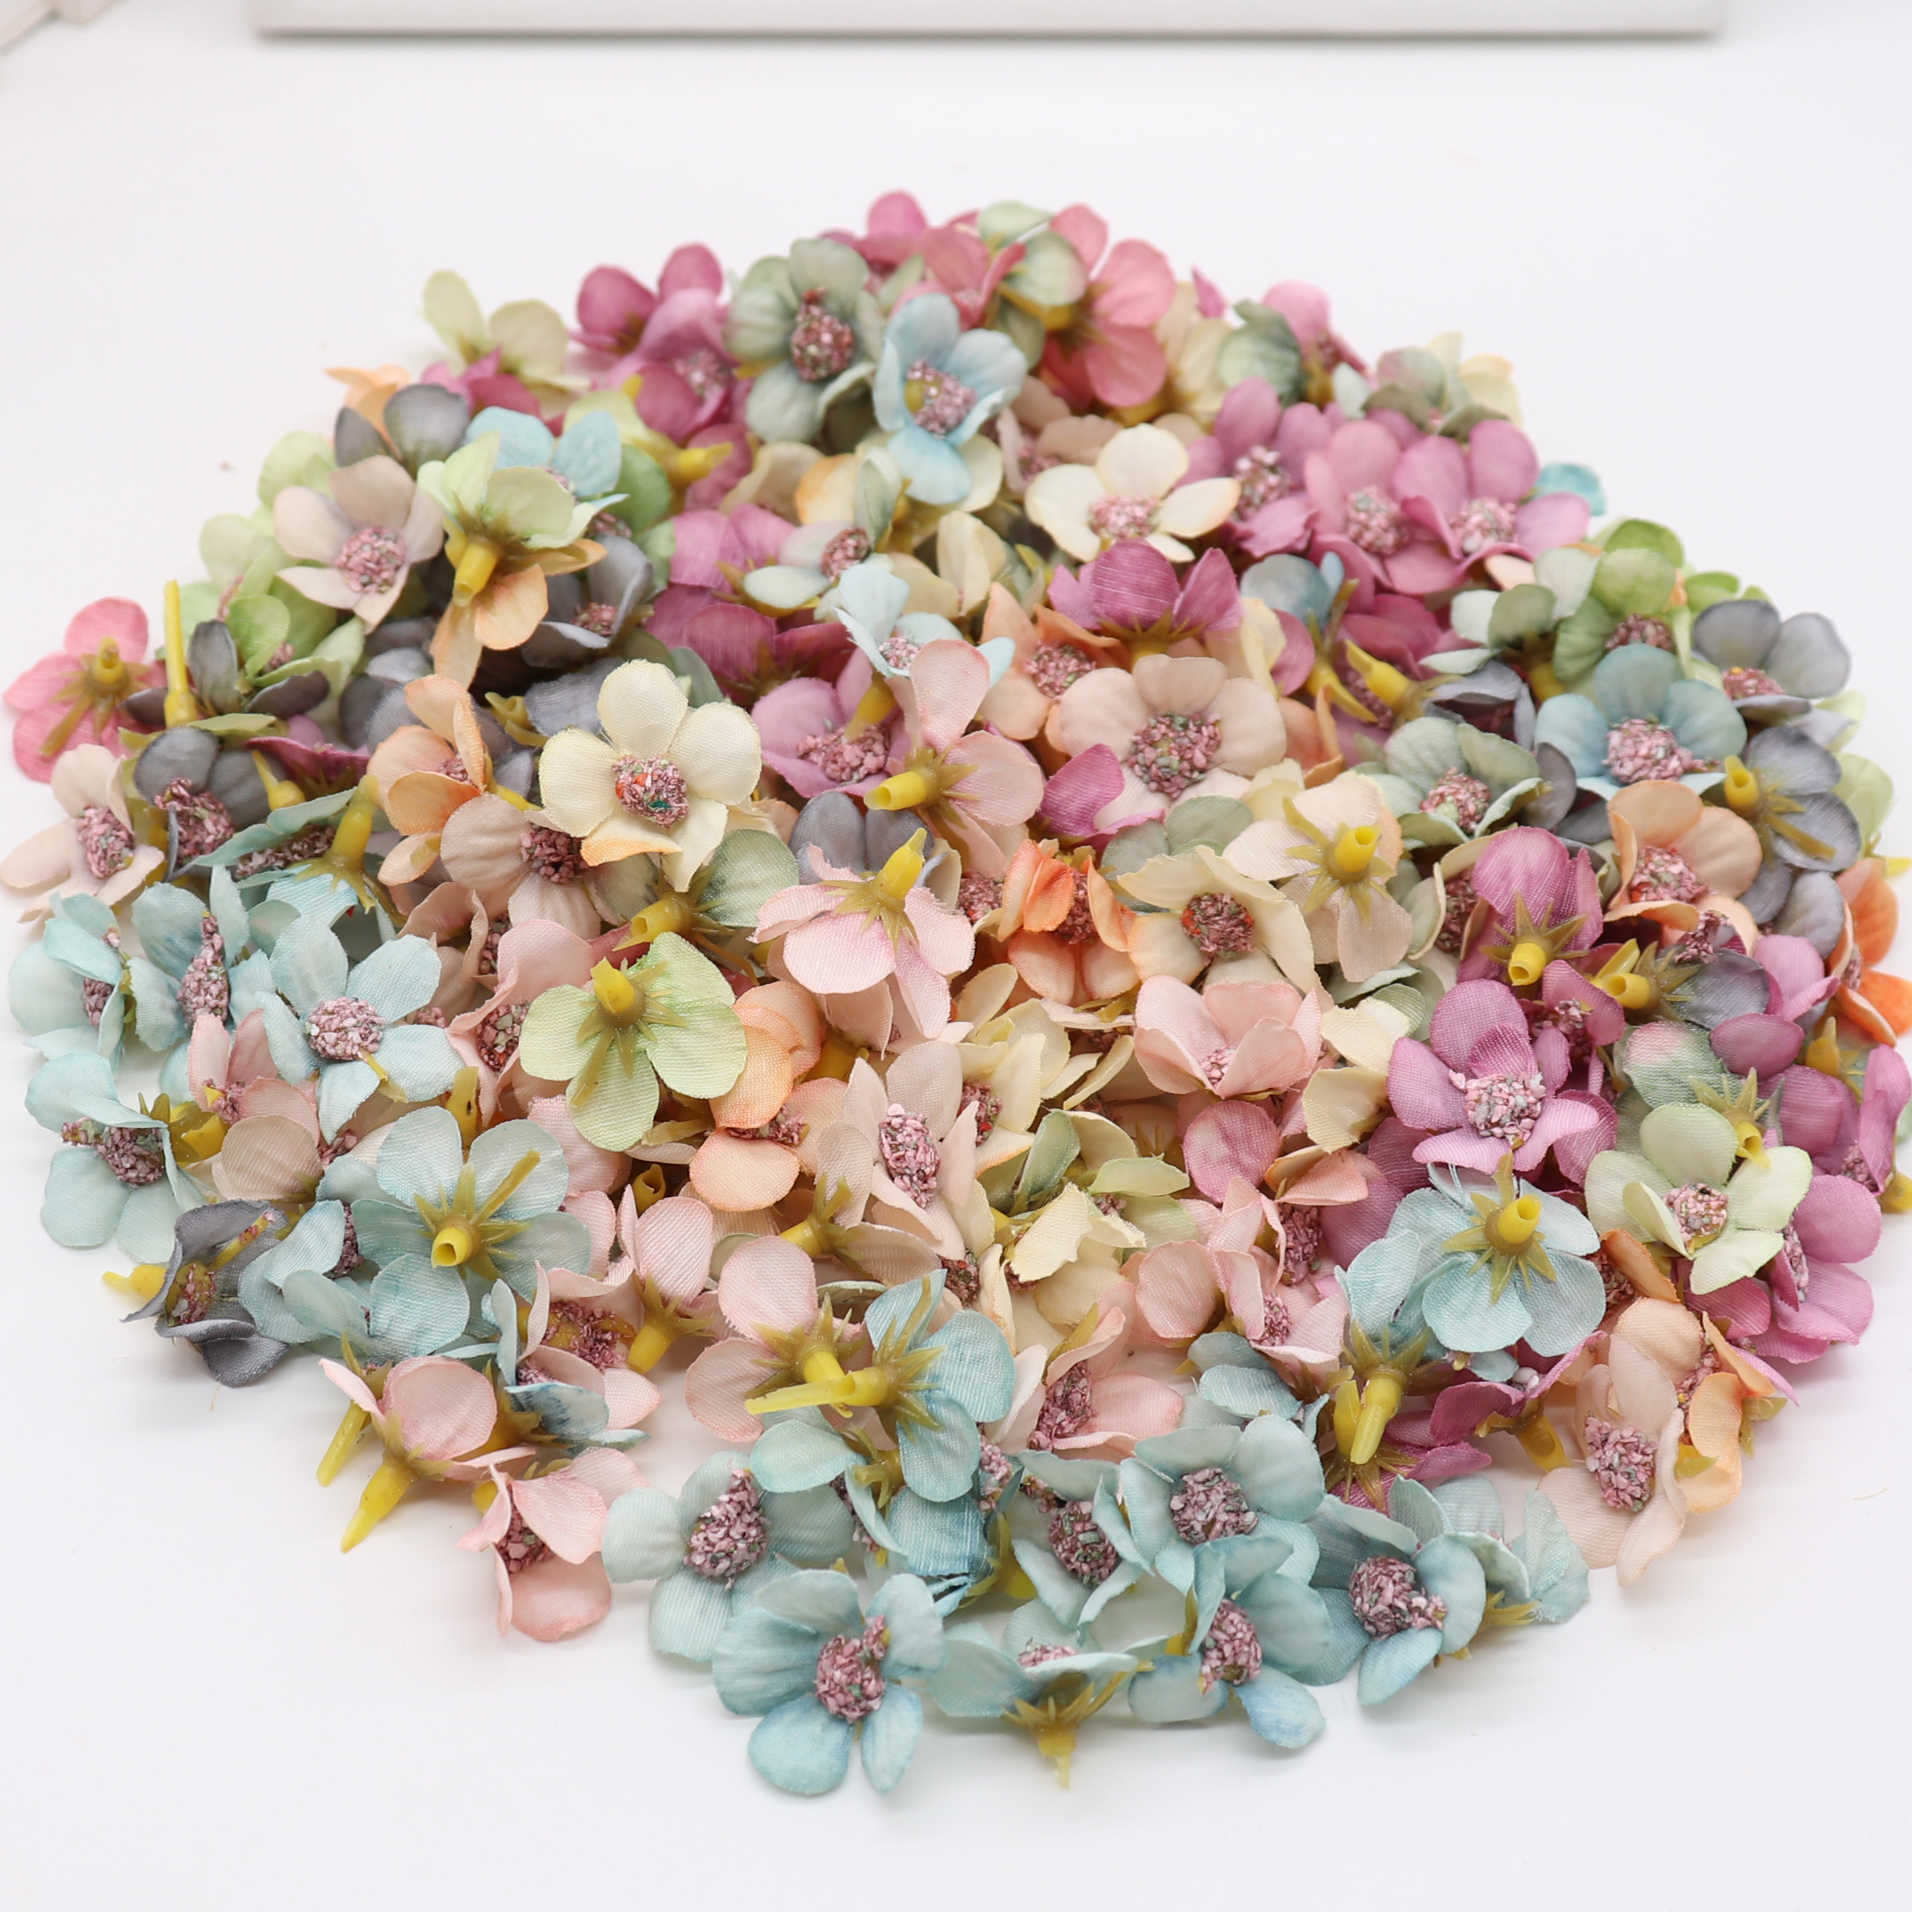 50Pcs 2cm Multicolor Daisy Flower Heads Mini Silk Artificial Flowers for Wreath Scrapbooking Home Wedding Decoration